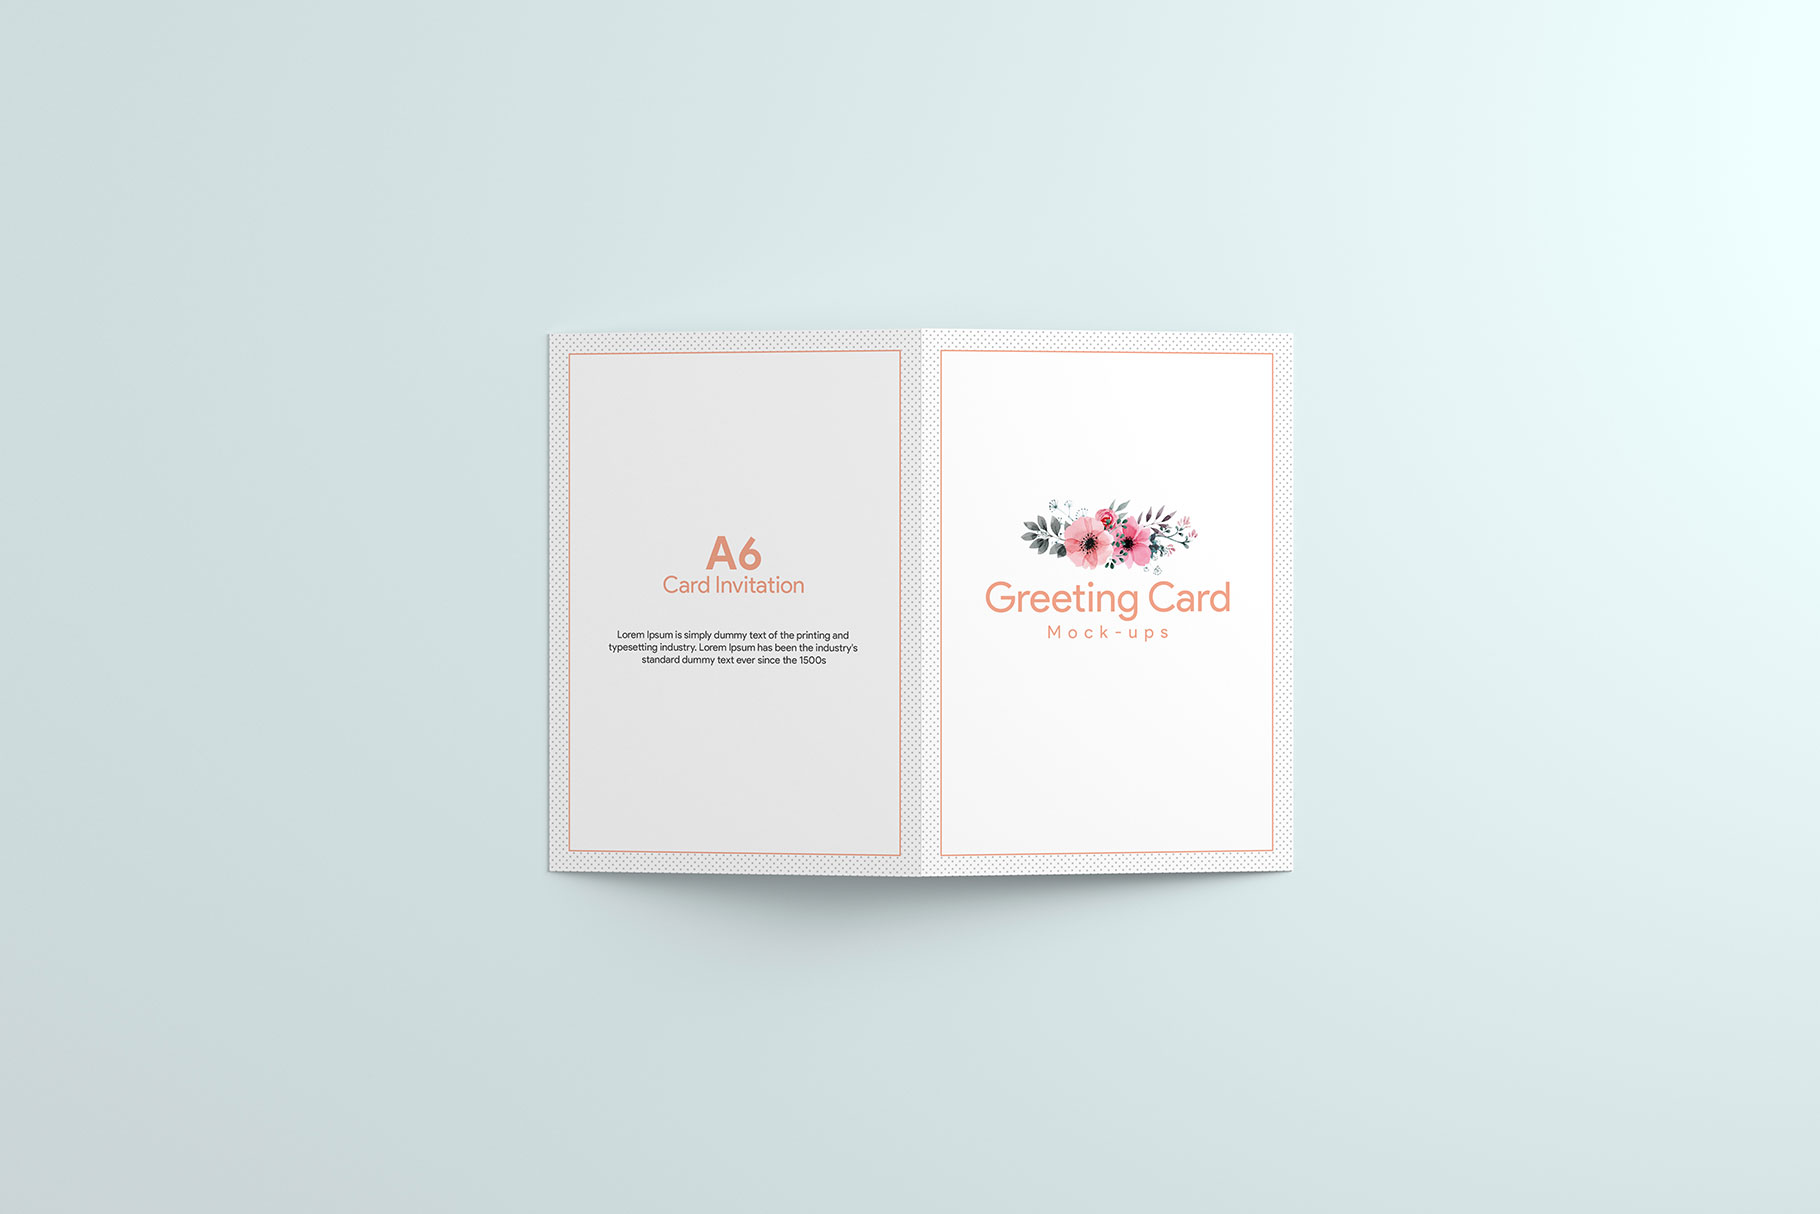 A6 Greeting Card Invitation X2 example image 12